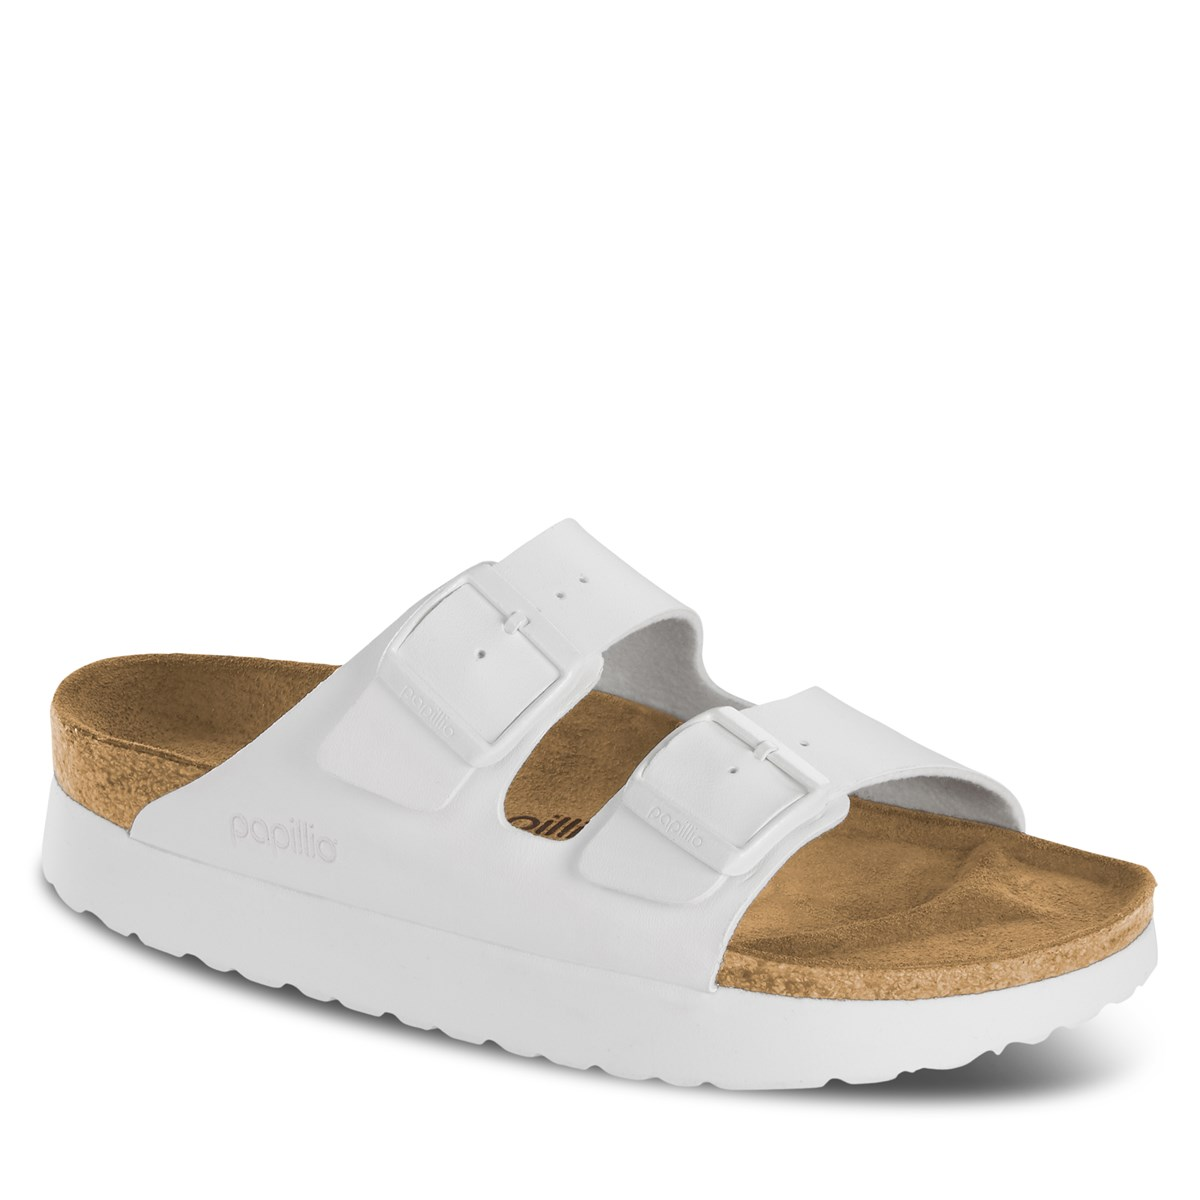 Women's Papillio Arizona Platform Sandals in White